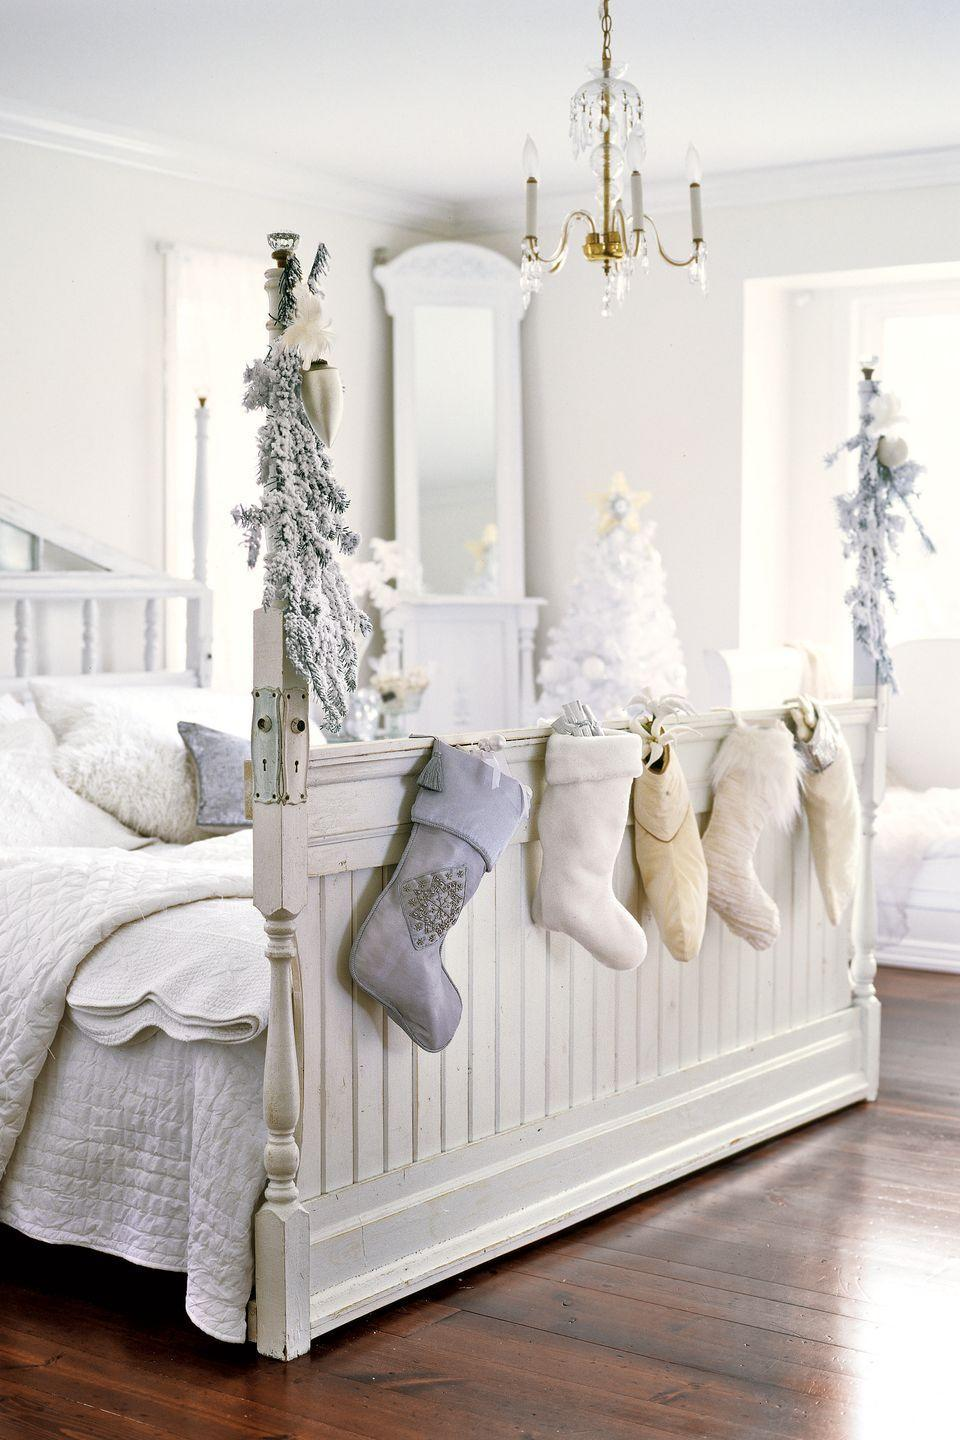 """<p>Who says stockings have to go on the mantel? Hang yours at the foot of your bed for easy access on Christmas morning.</p><p><a class=""""link rapid-noclick-resp"""" href=""""https://www.amazon.com/Stockings-Holders-Metal-Seasonal-D%C3%A9cor/s?ie=UTF8&page=1&rh=n%3A13744821%2Cp_n_material_browse%3A316589011&tag=syn-yahoo-20&ascsubtag=%5Bartid%7C10050.g.1247%5Bsrc%7Cyahoo-us"""" rel=""""nofollow noopener"""" target=""""_blank"""" data-ylk=""""slk:SHOP STOCKING HOOKS"""">SHOP STOCKING HOOKS</a><br></p>"""